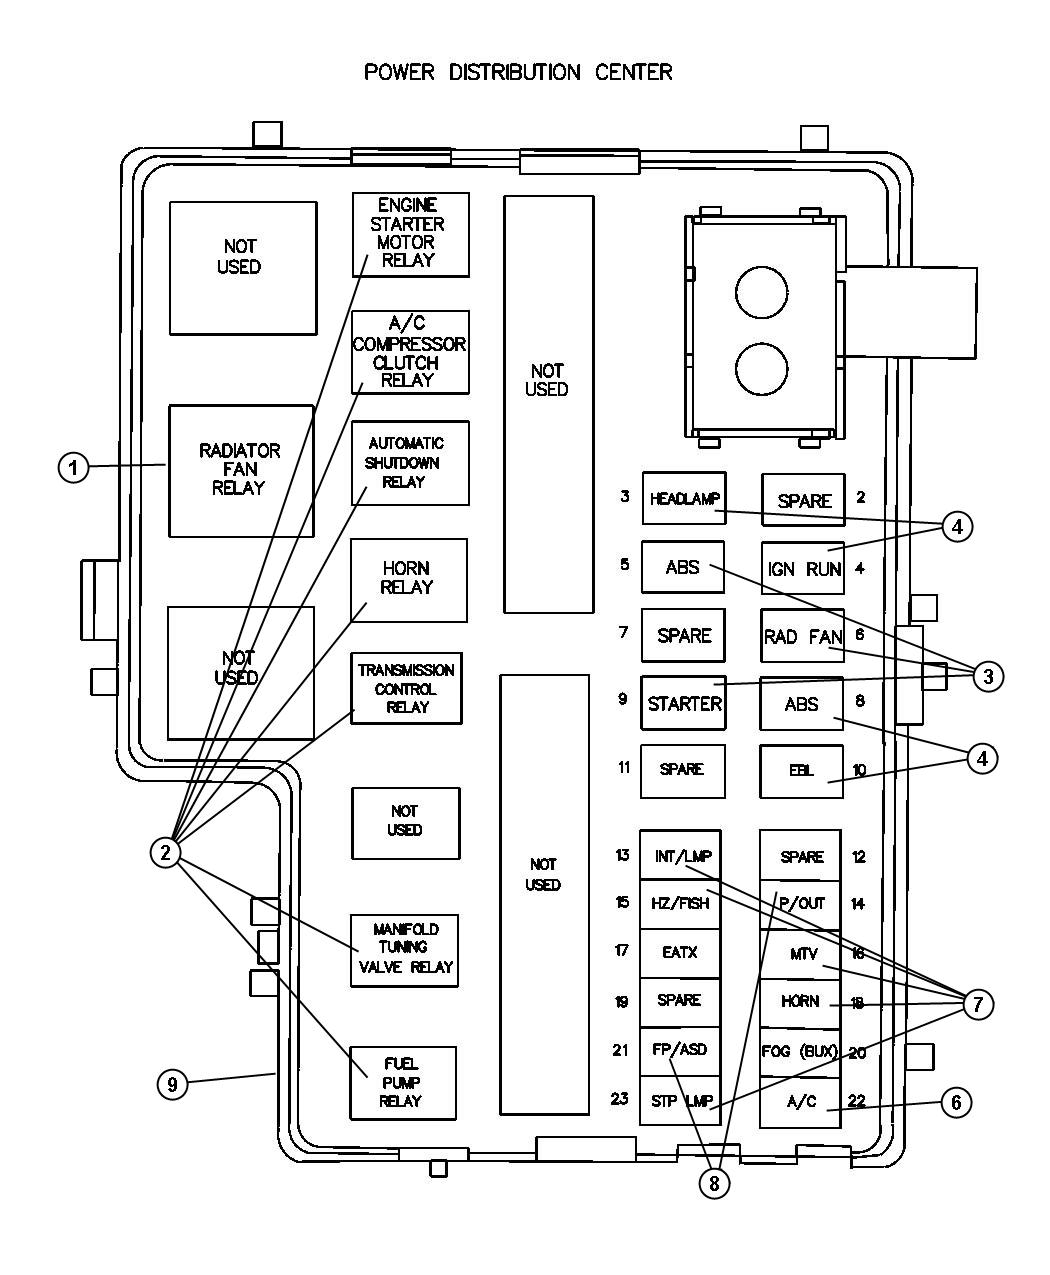 2002 dodge neon wiring diagram 2002 image wiring 2003 dodge neon starter wiring diagram jodebal com on 2002 dodge neon wiring diagram